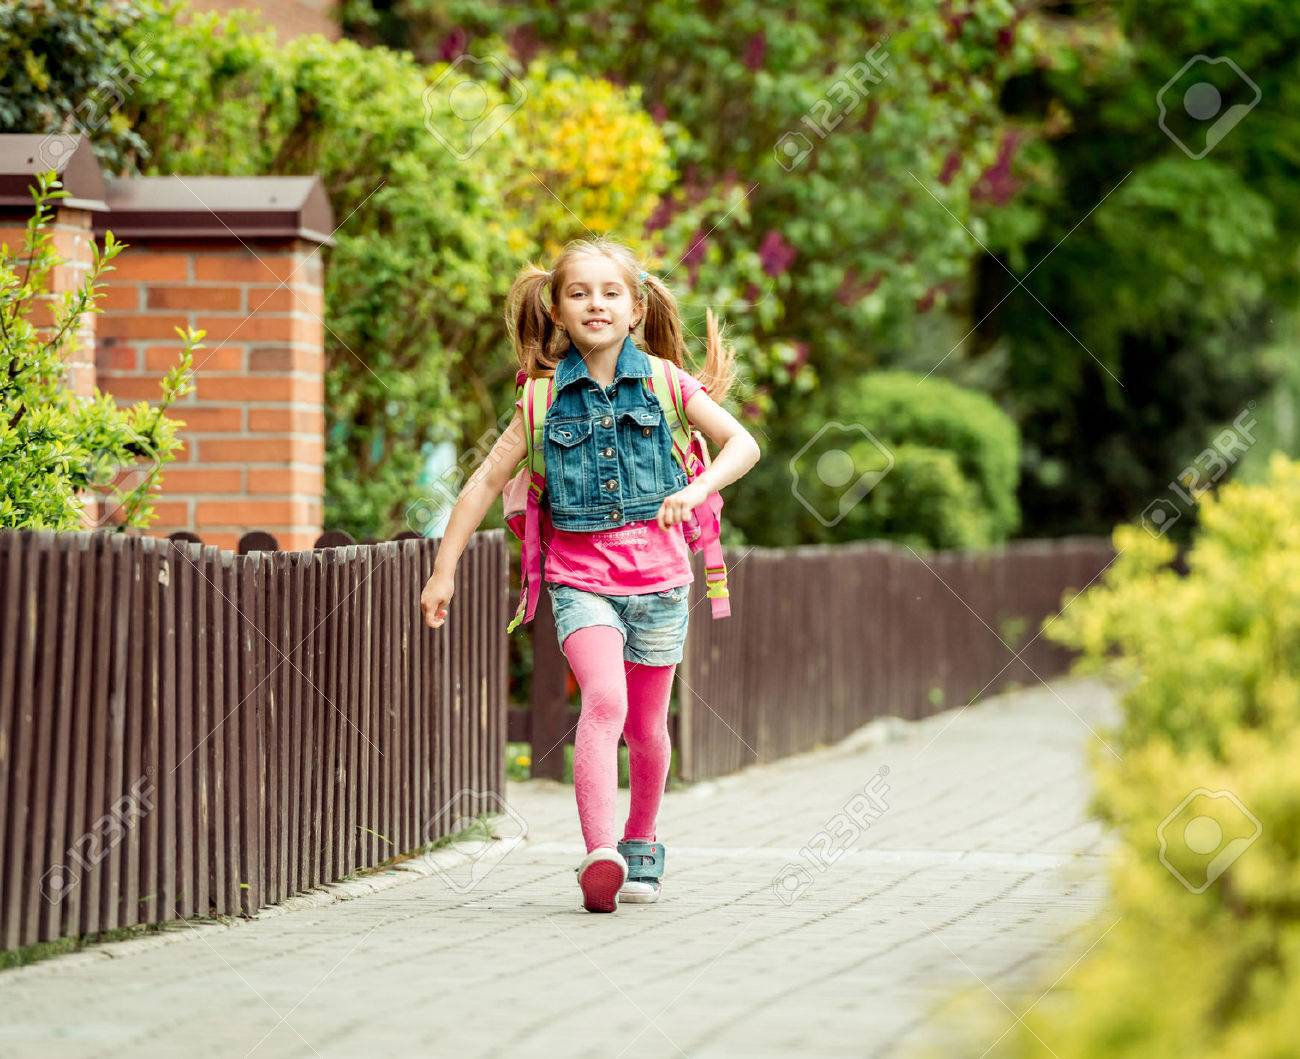 little girl with a backpack going to school. - 43021550